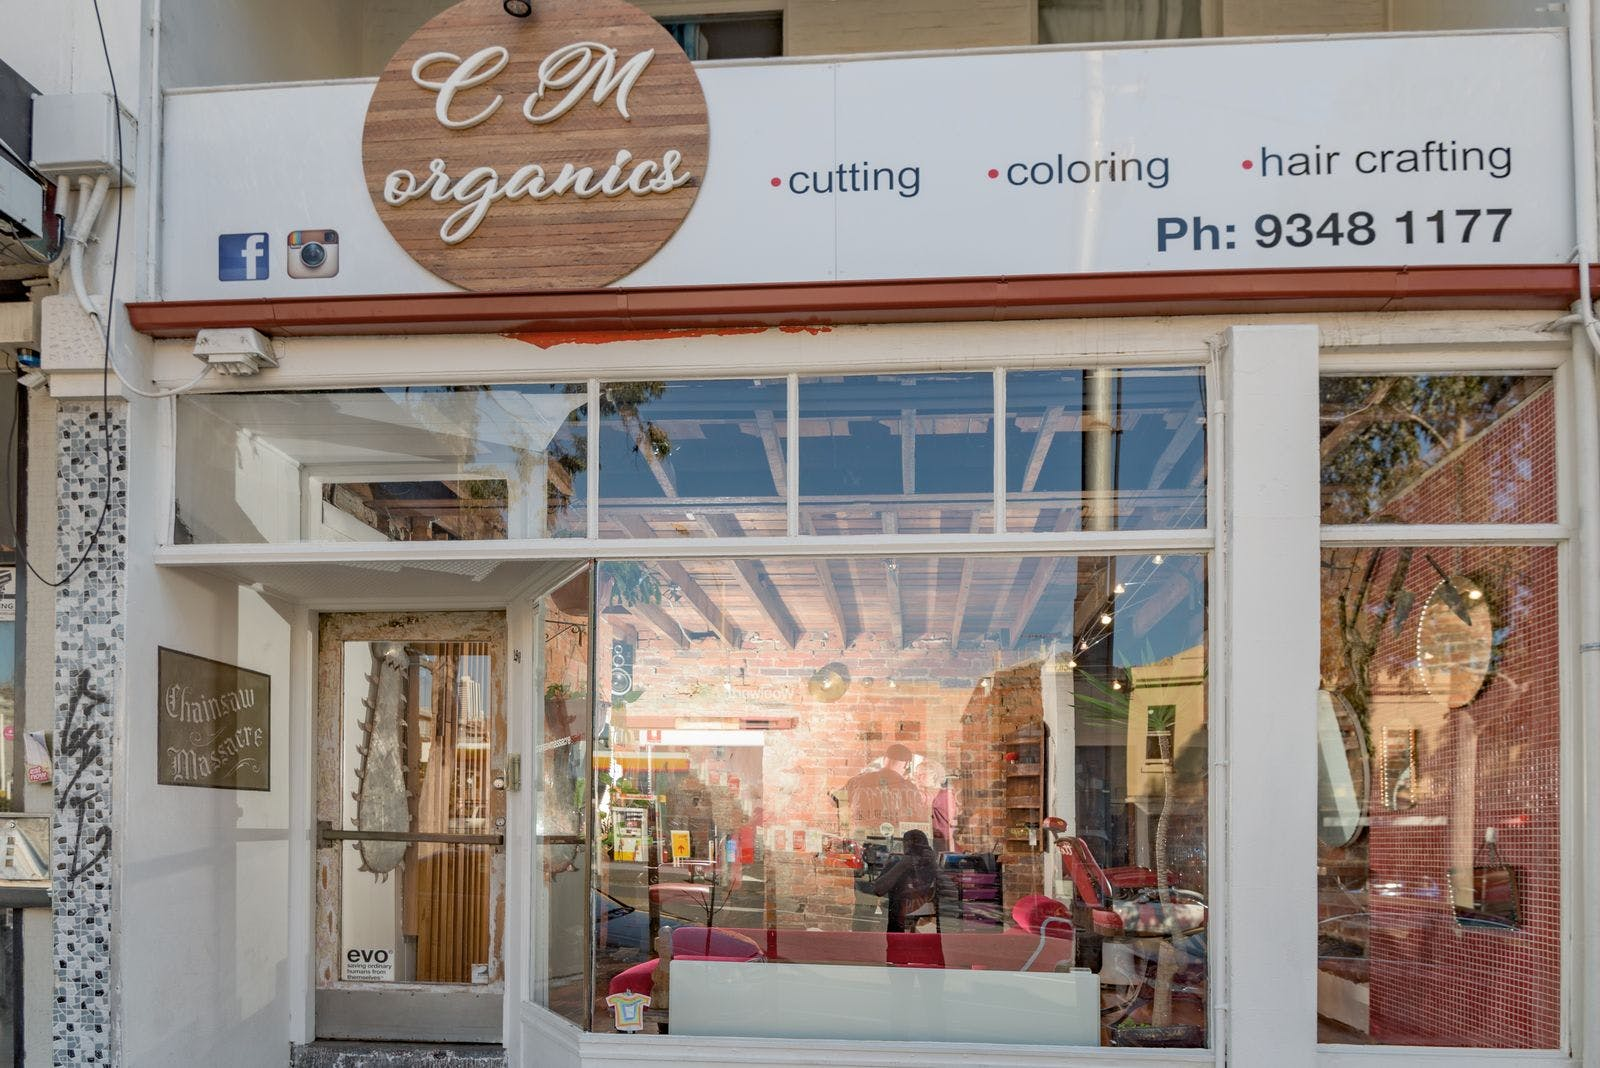 CM Organics - Carlton  Haircut and Hairdressing  Hair Highlights